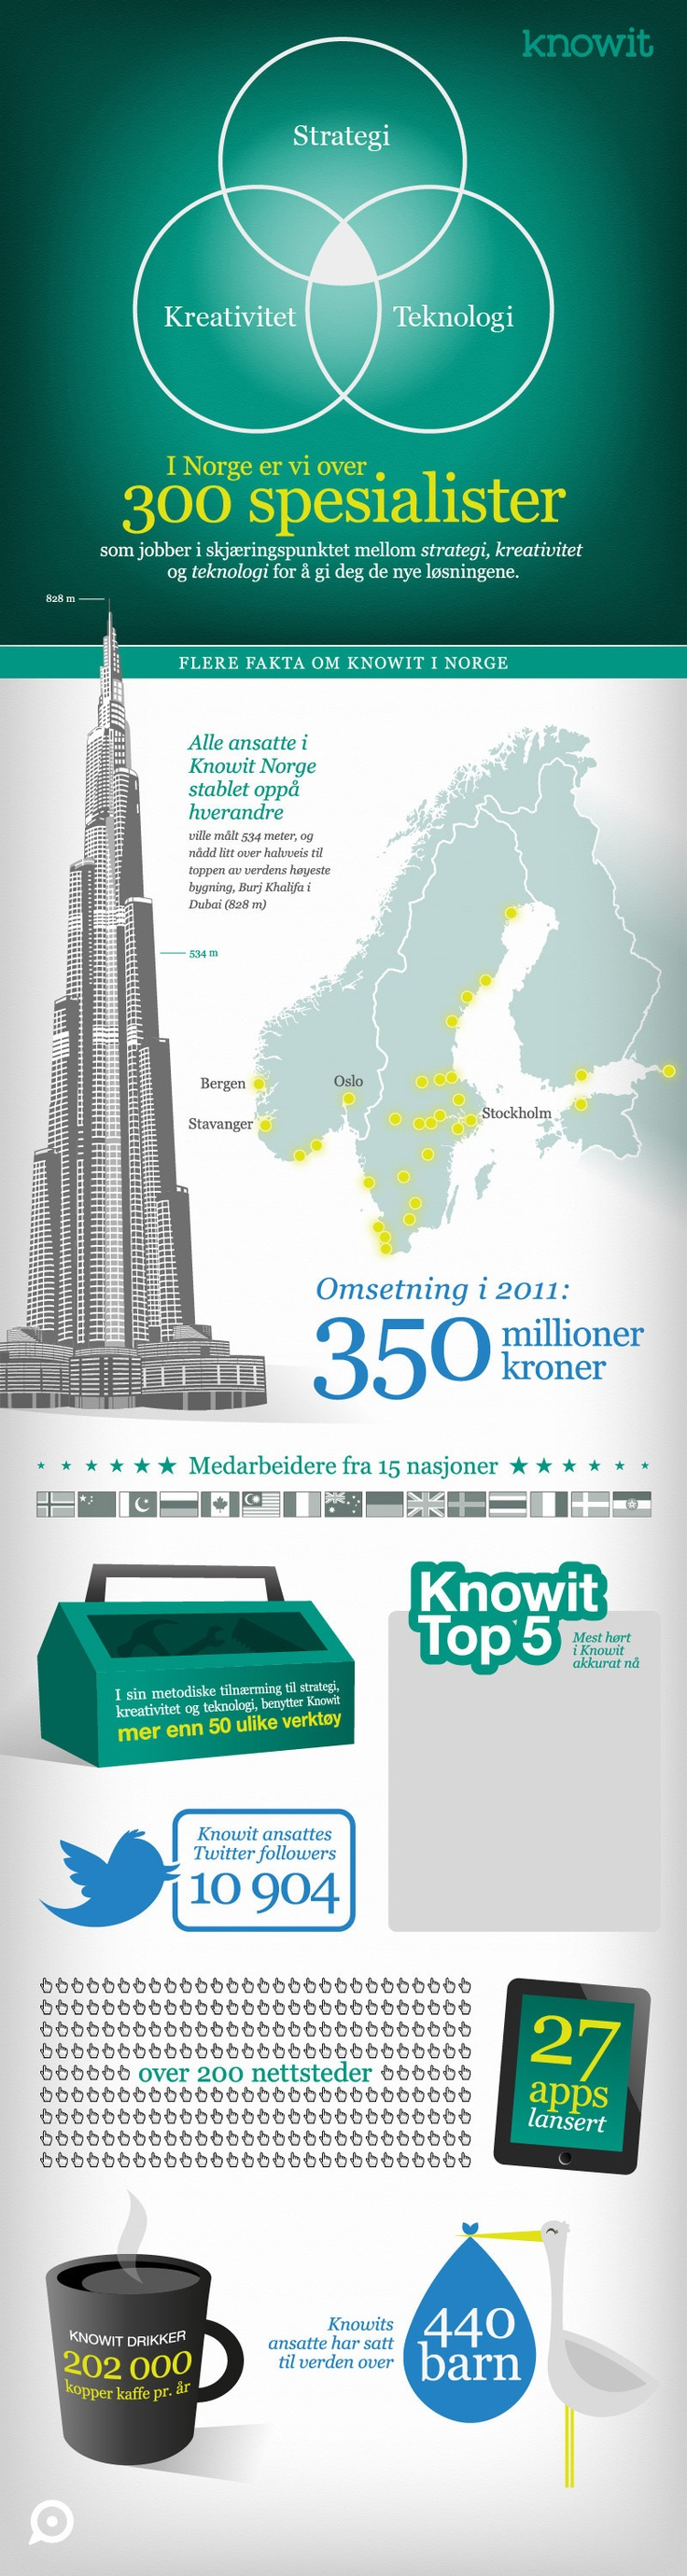 Infographics about the Norwegian subsidiary of the company I work for.